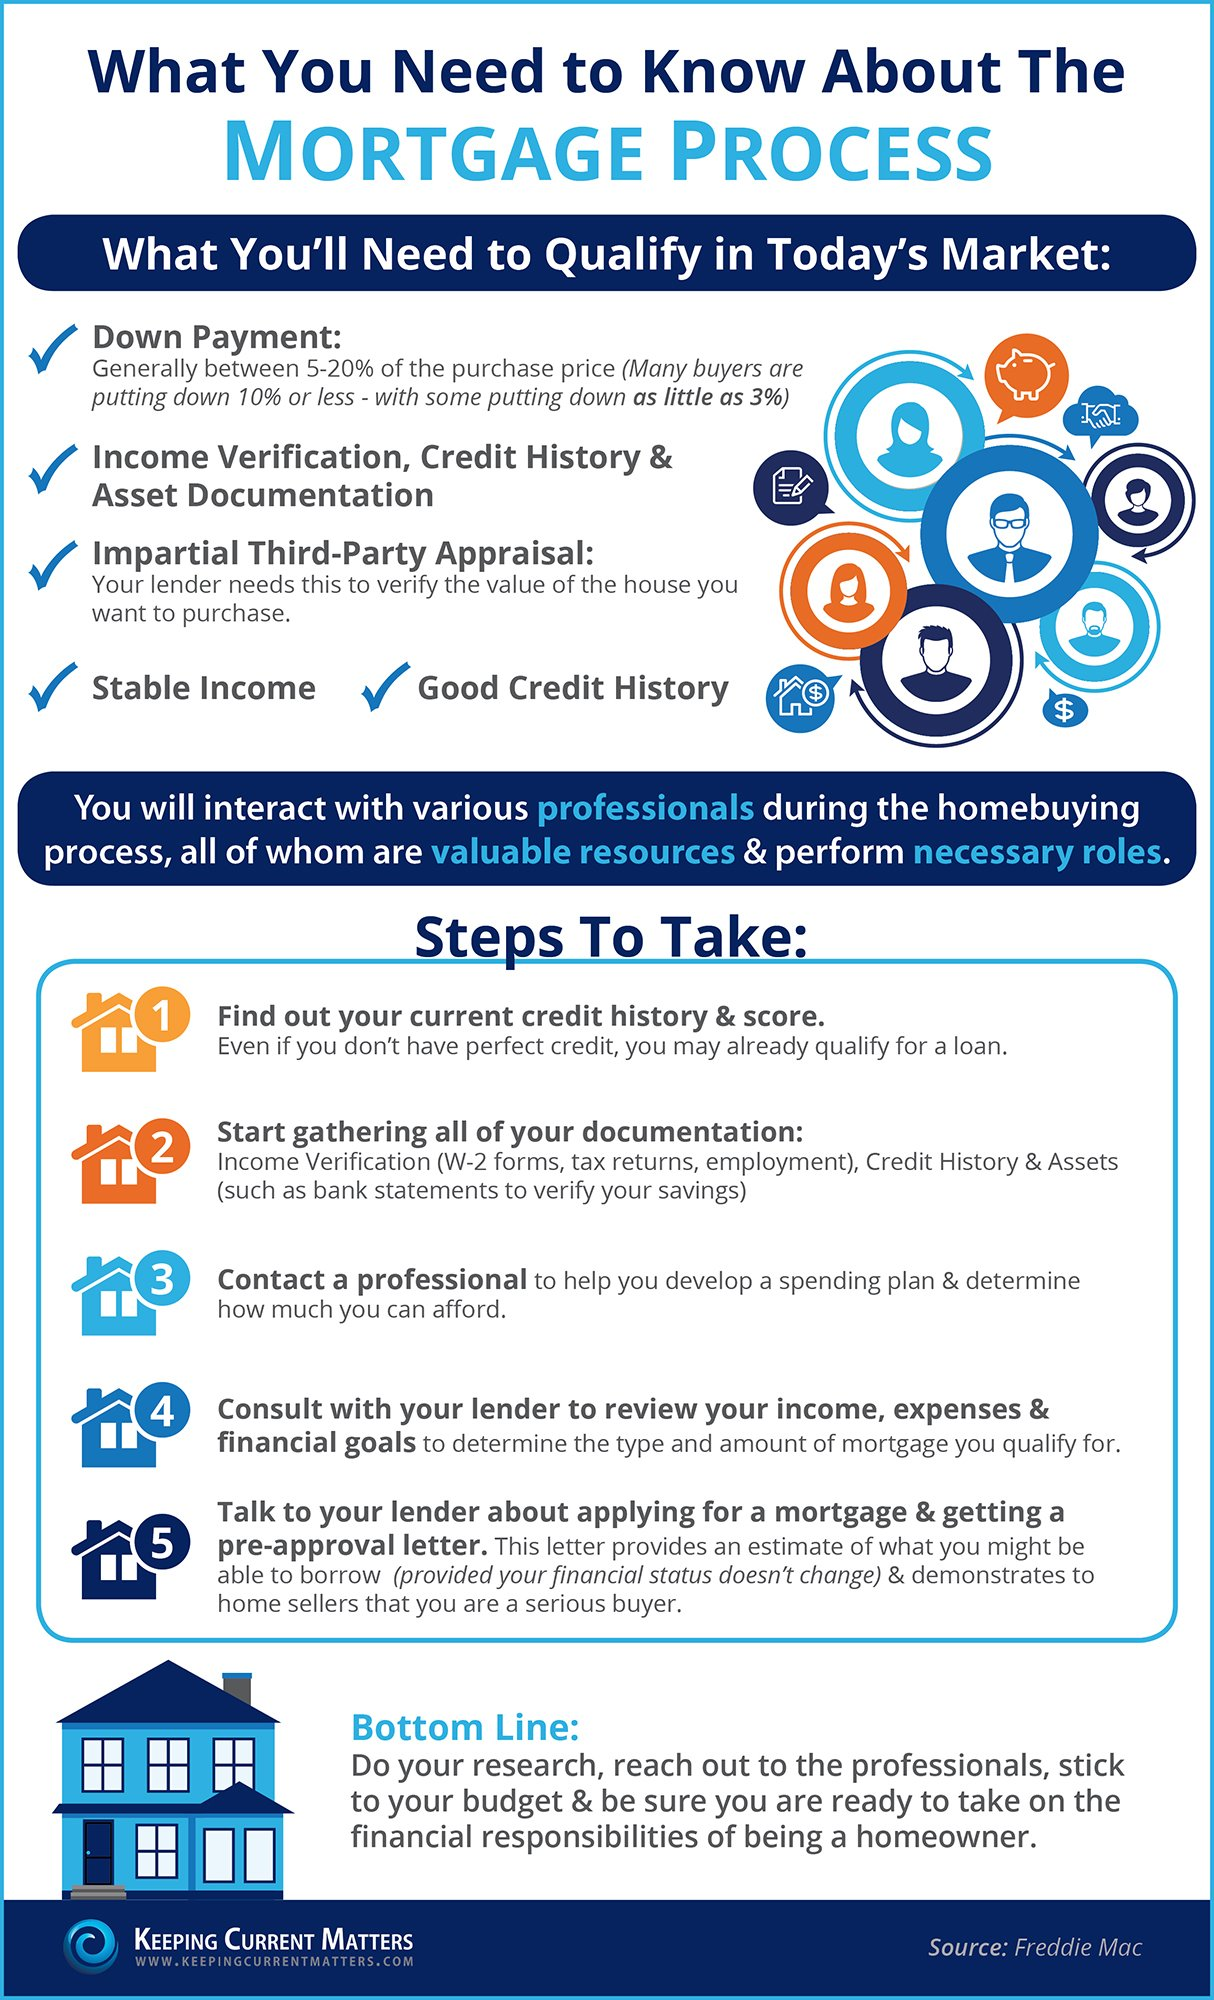 ba7f917af91 The Mortgage Process  What You Need To Know  INFOGRAPHIC  - Keeping ...